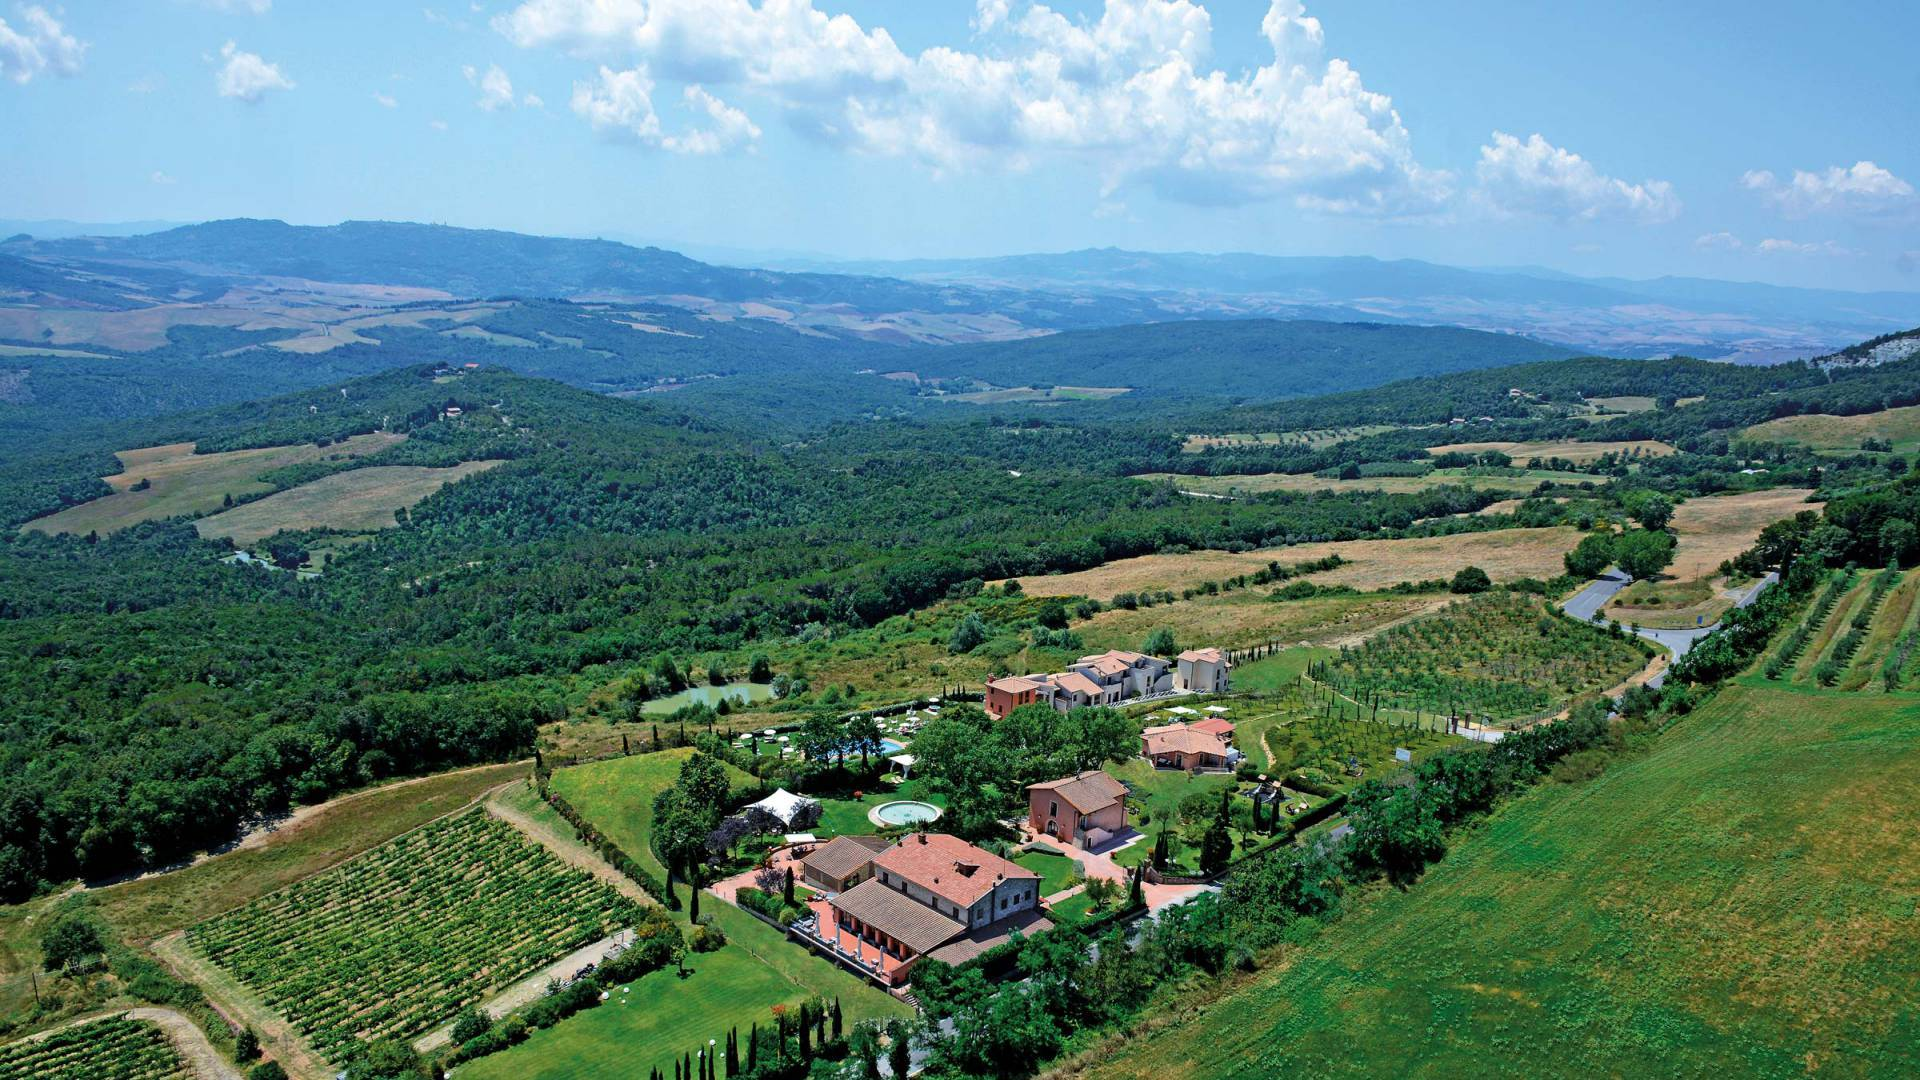 WINE RESORT FOR SALE IN SAN GIMIGNANO, TUSCANY